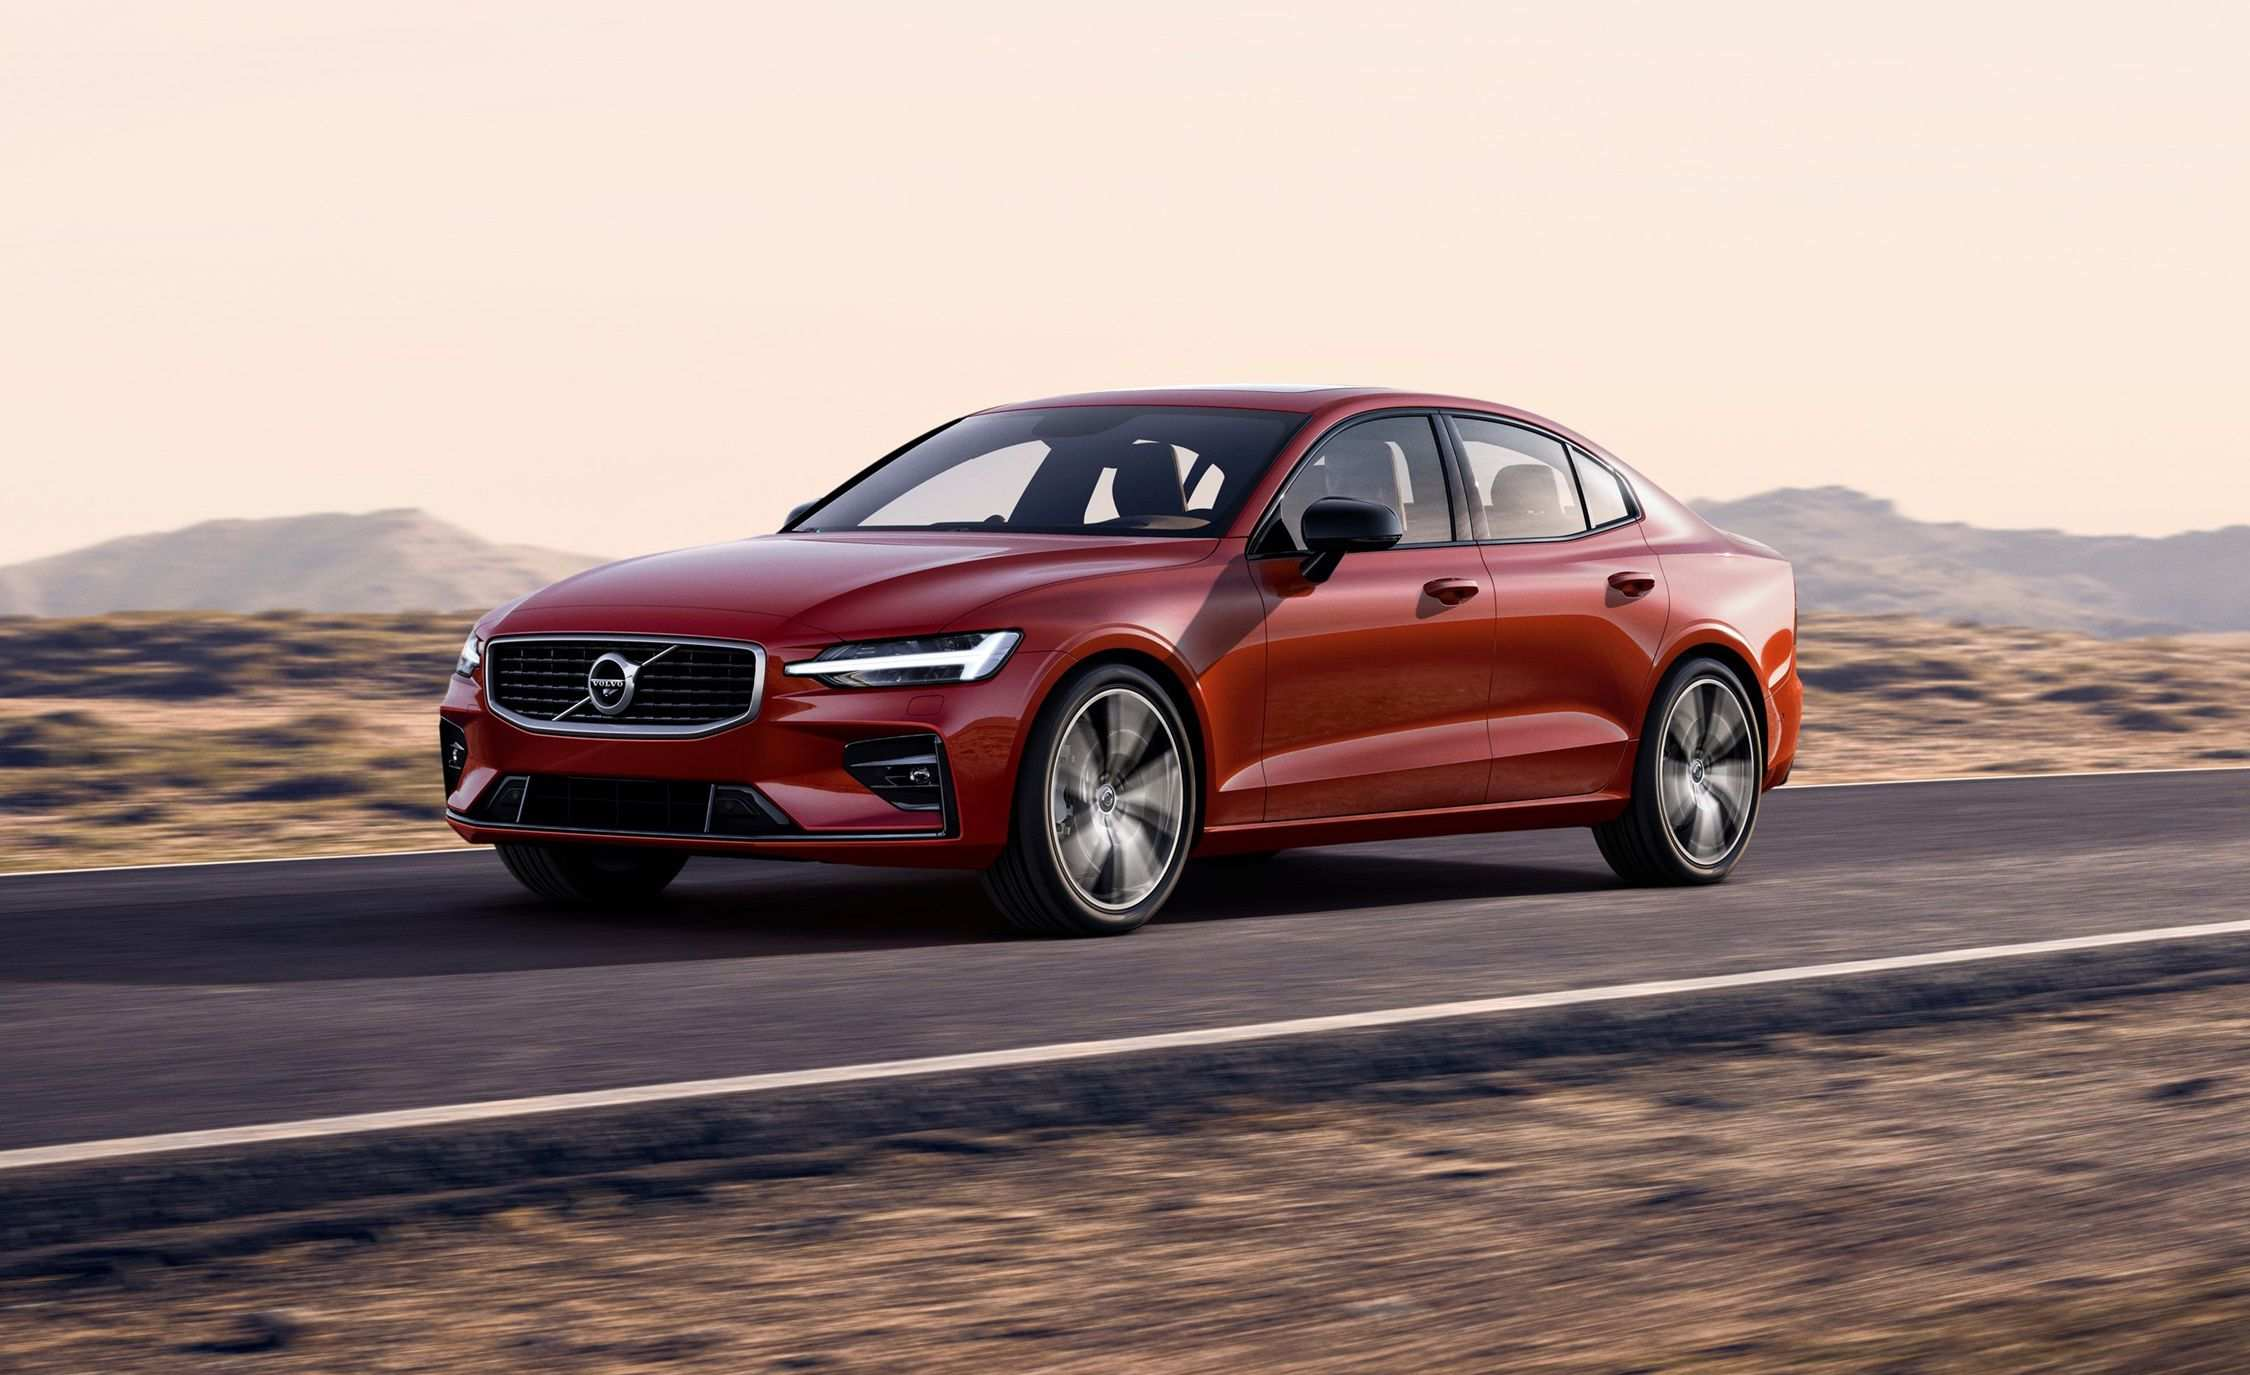 36 Gallery of Volvo S60 2020 New Concept Images for Volvo S60 2020 New Concept